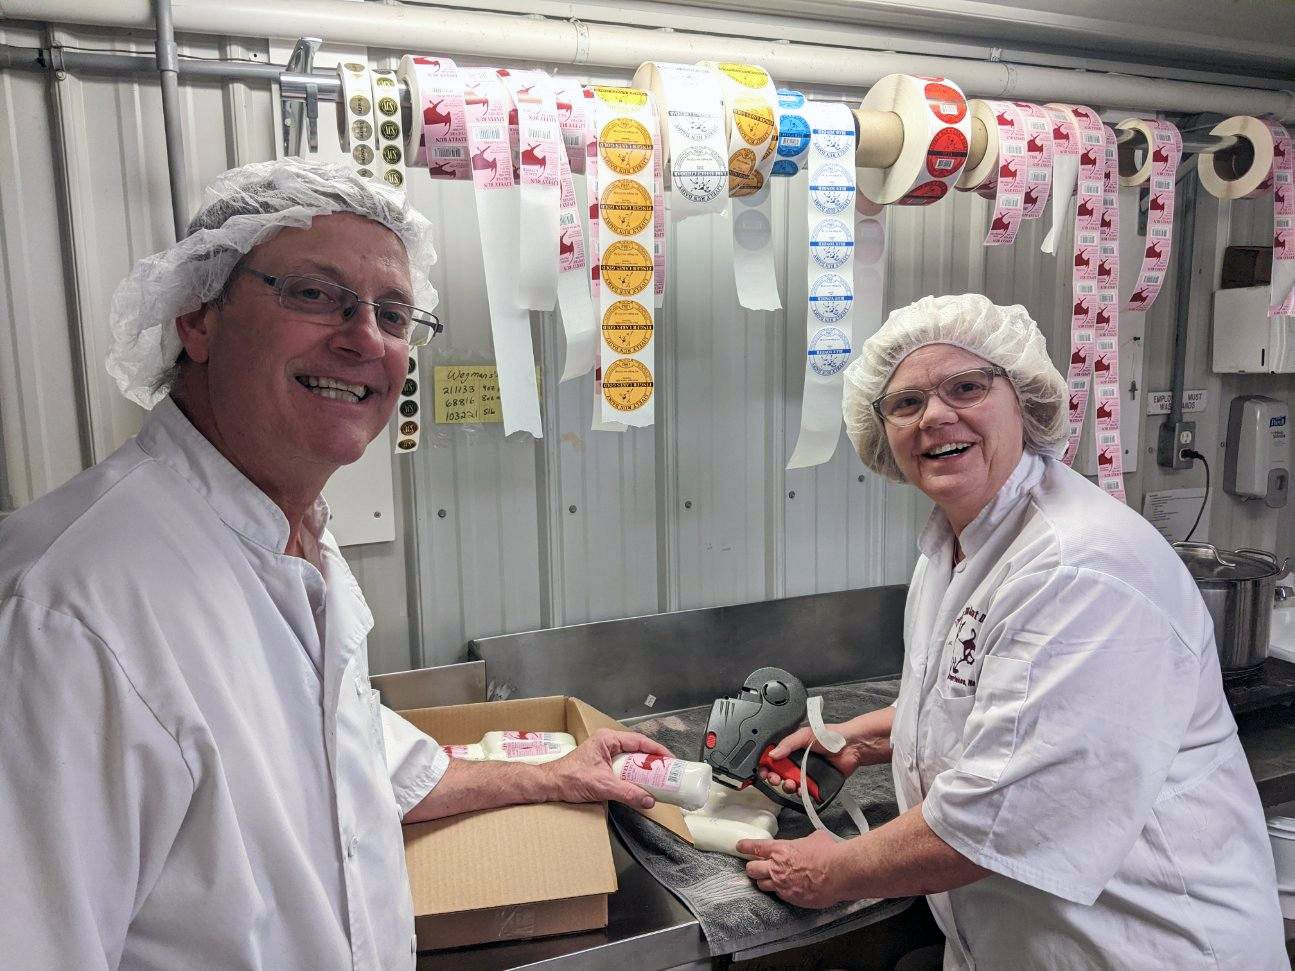 Steve and Susanne Messmer packaging cheese donations.